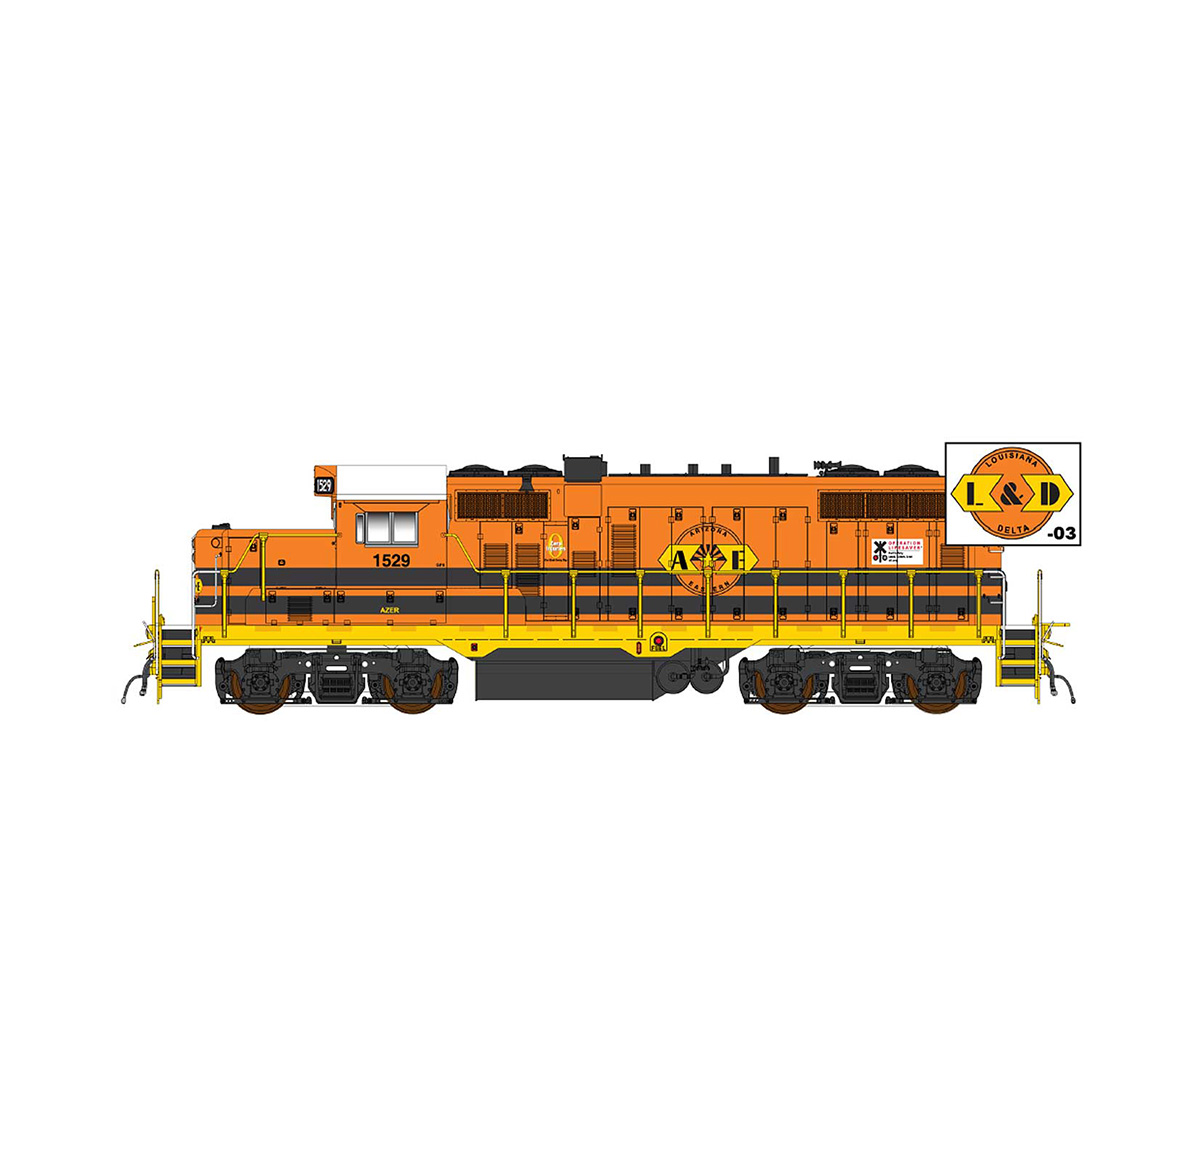 InterMountain 49871S-03 HO EMD GP10 Paducah, ESU LokSound & DCC, G&W/L&D #1850